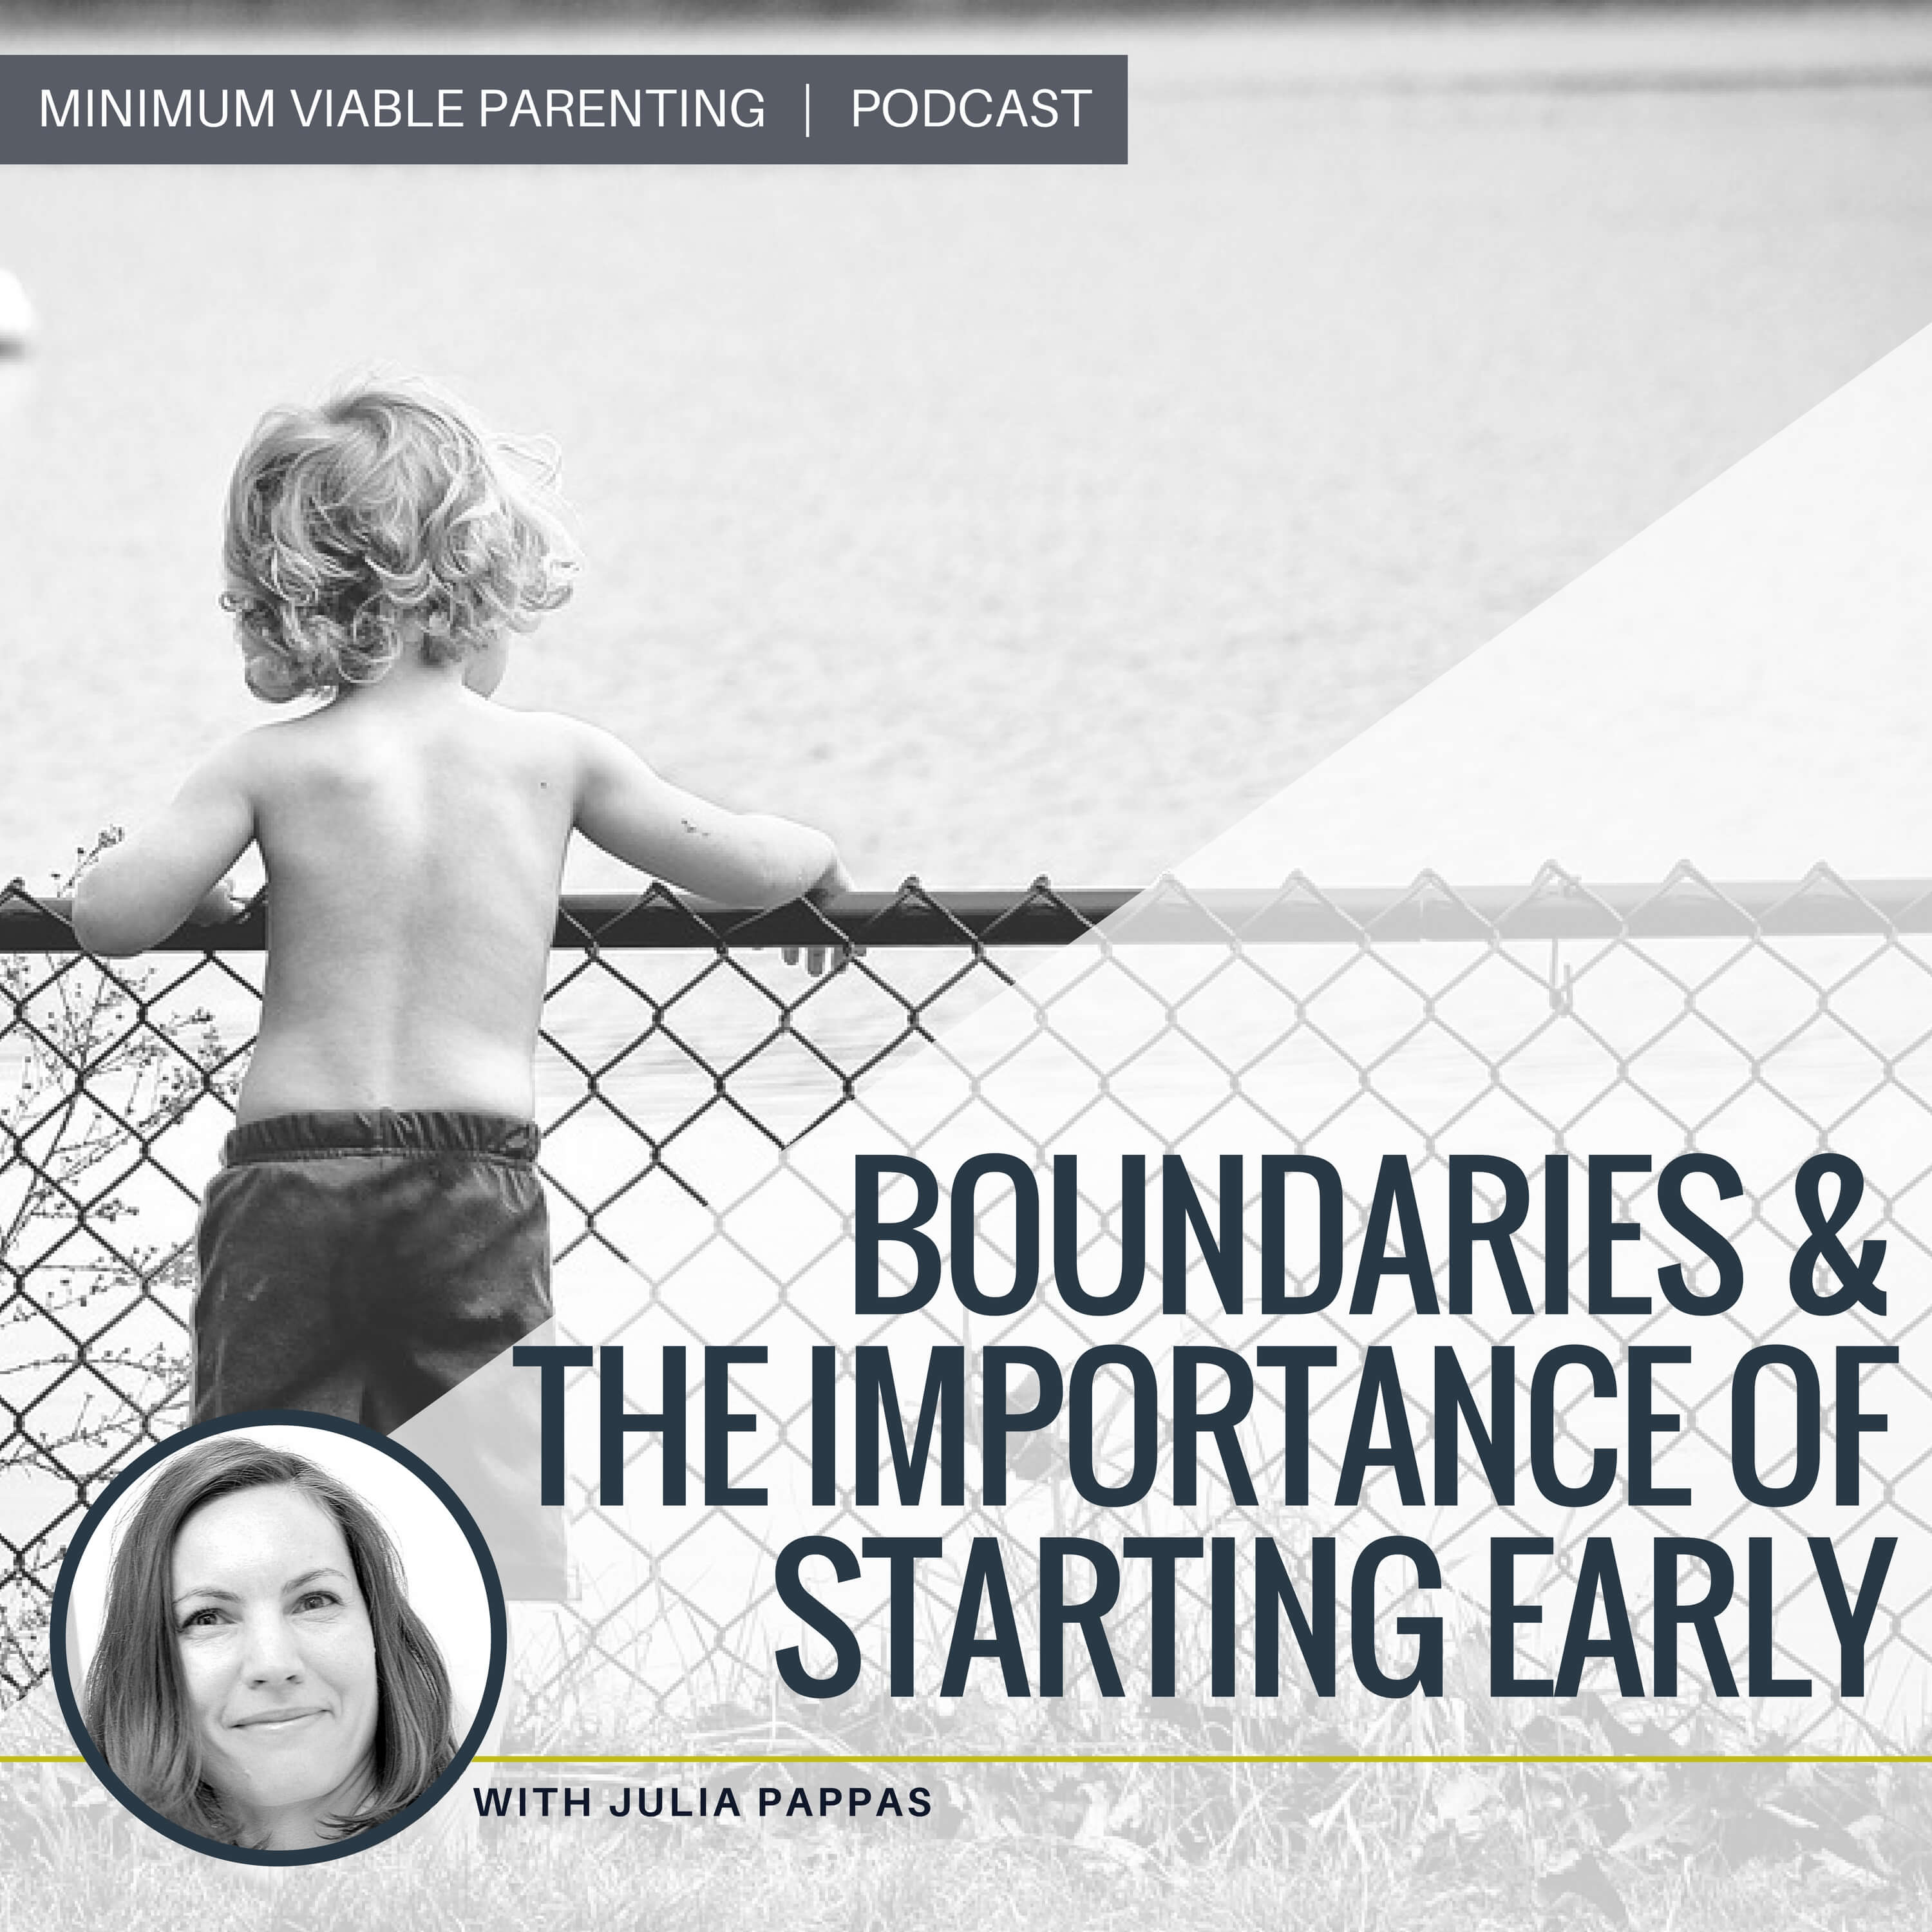 Episode 016: Boundaries & The Importance of Starting Early